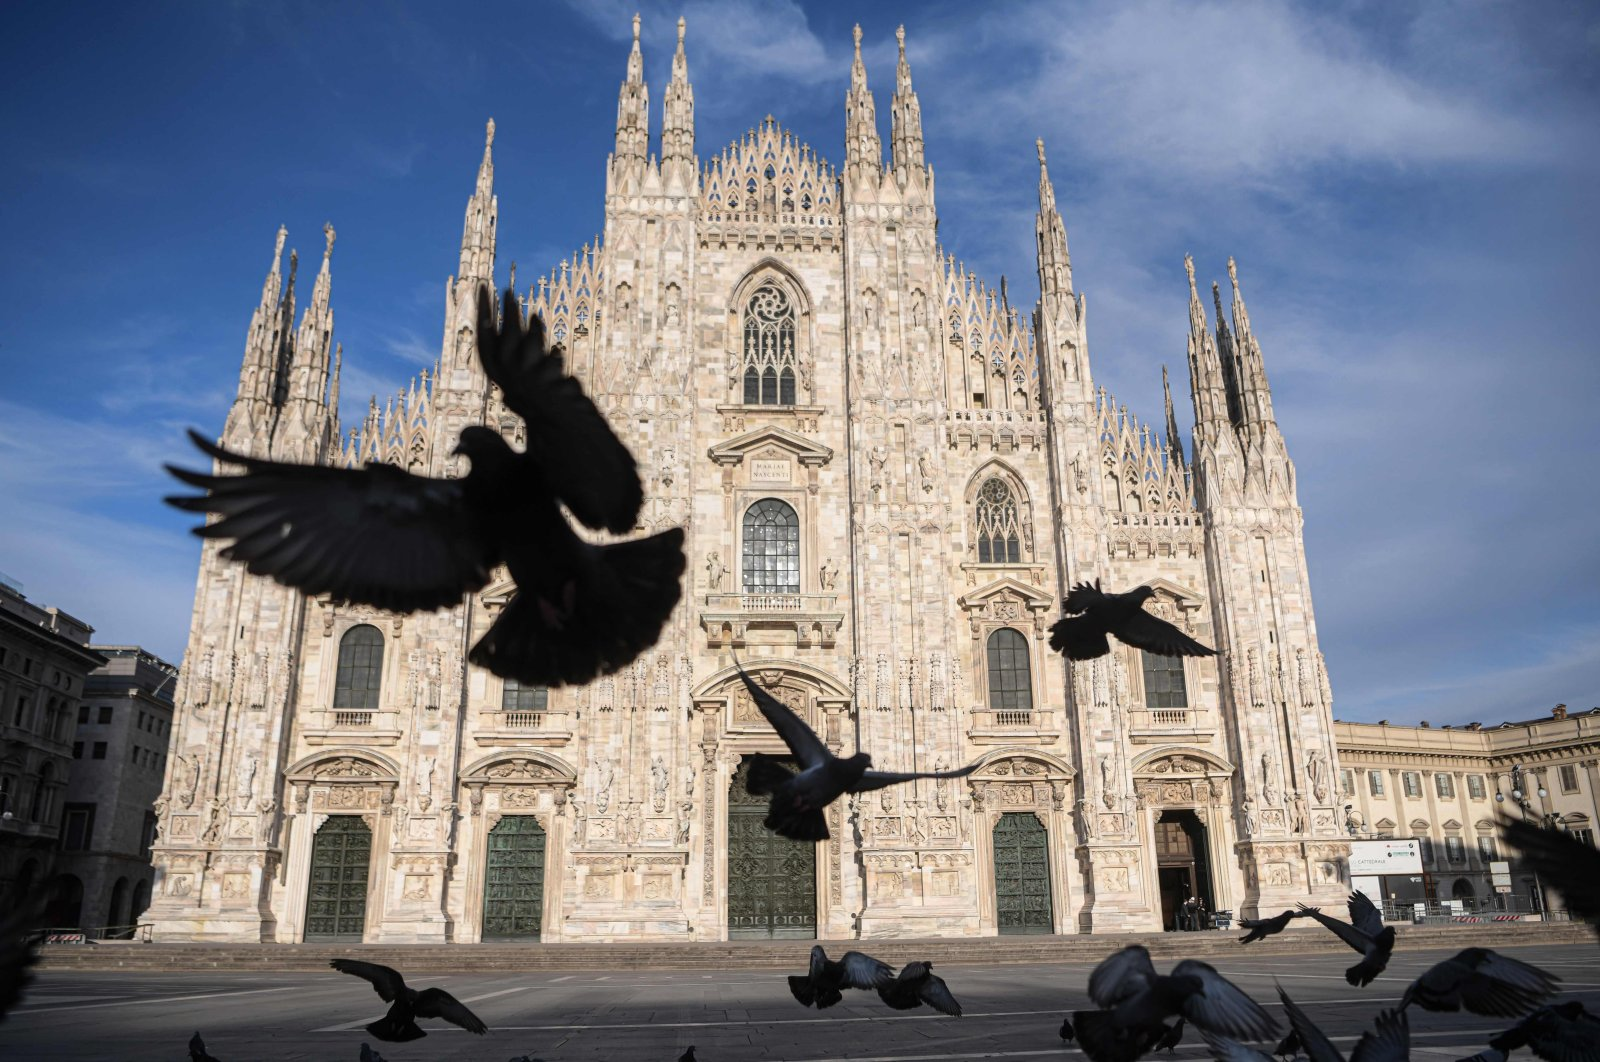 Pigeons fly over a deserted Piazza del Duomo during Italy's lockdown aimed at curbing the spread of the COVID-19 outbreak, in central Milan, Italy, April 12, 2020. (AFP Photo)